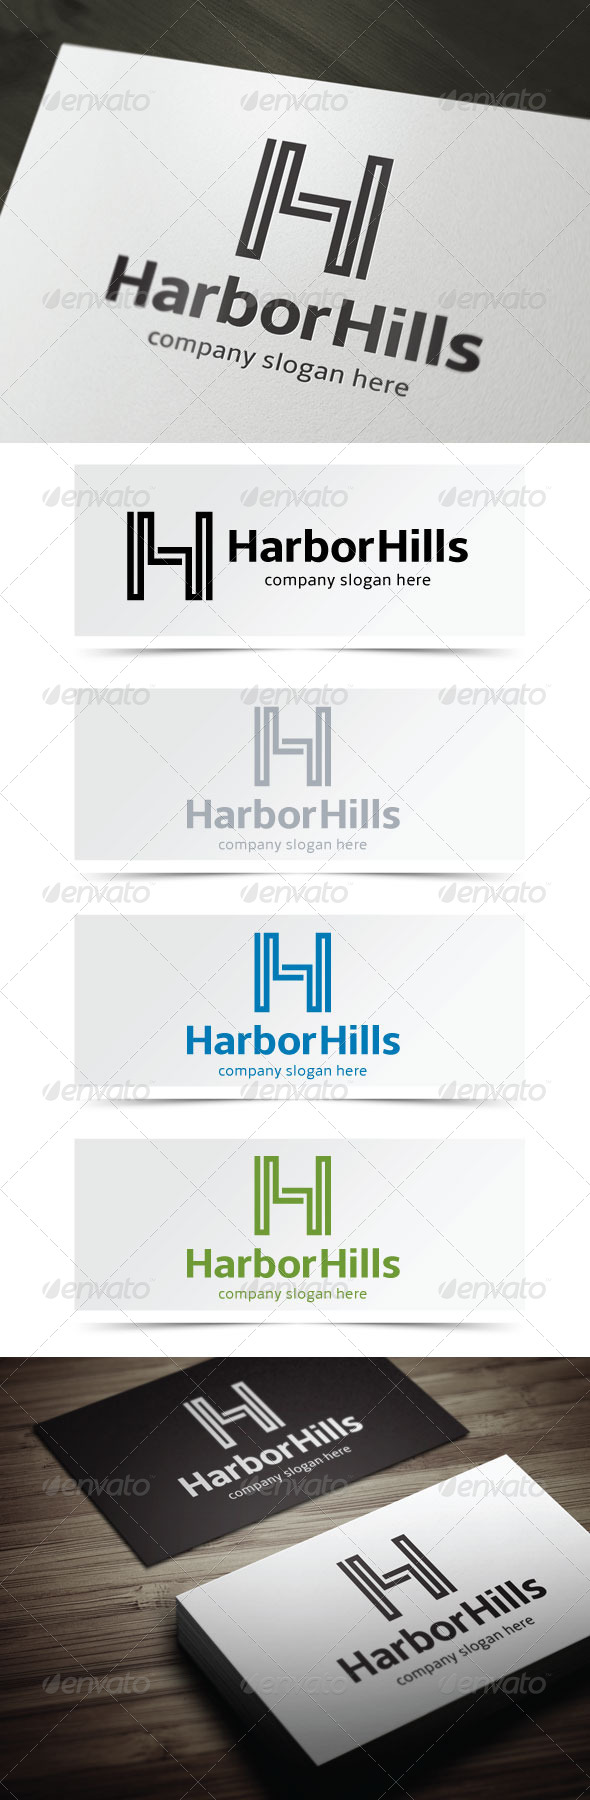 Harbor Hills - Letters Logo Templates